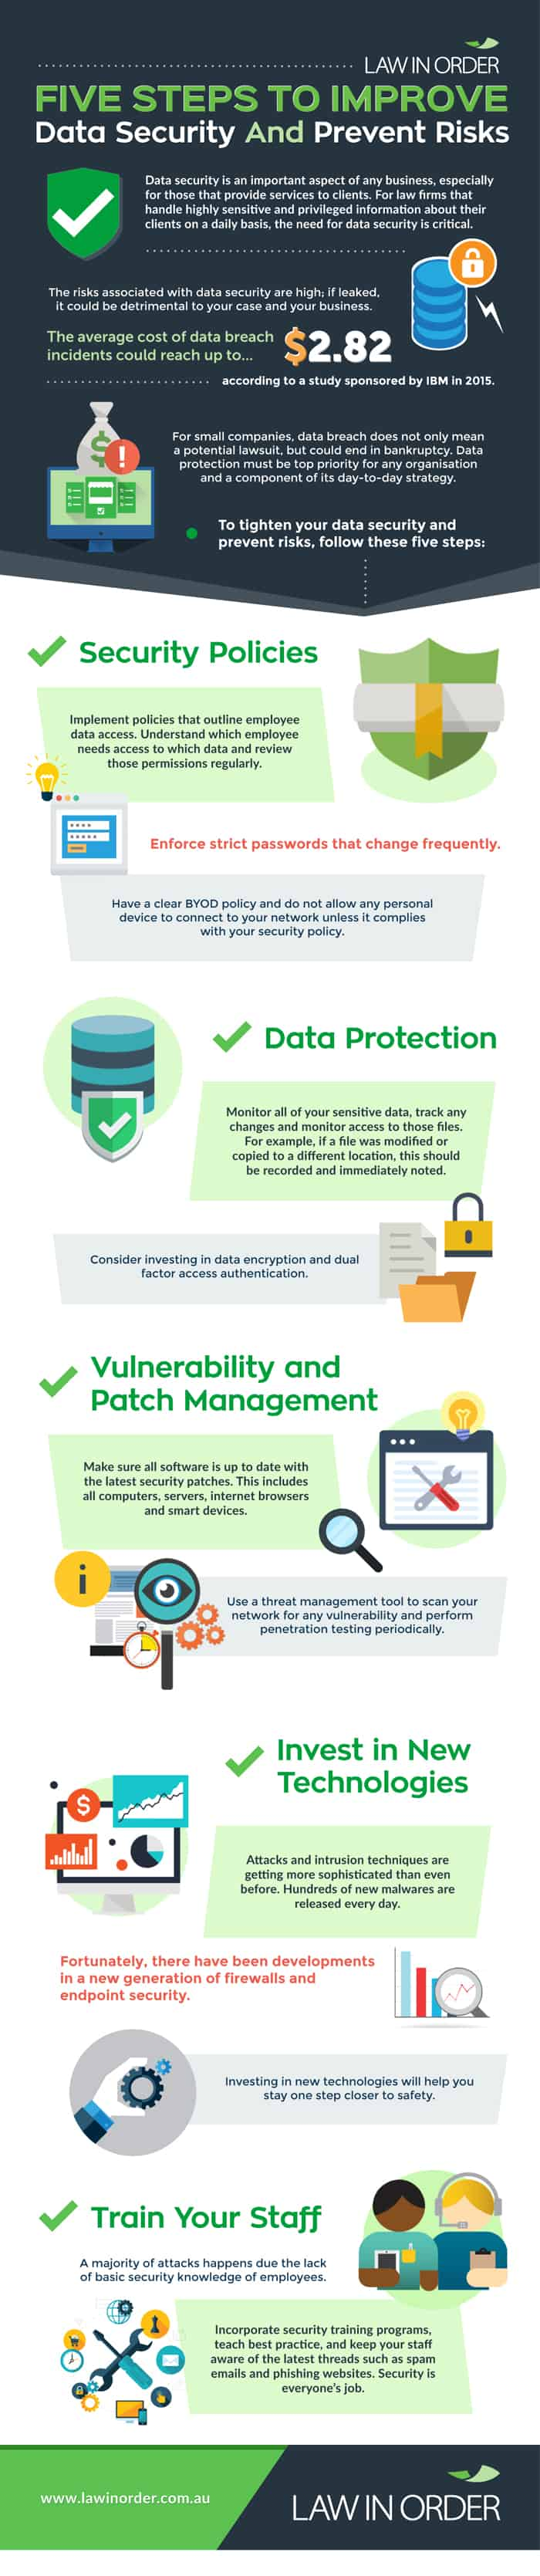 five-steps-to-improve-data-security-and-prevent-risks-jpg